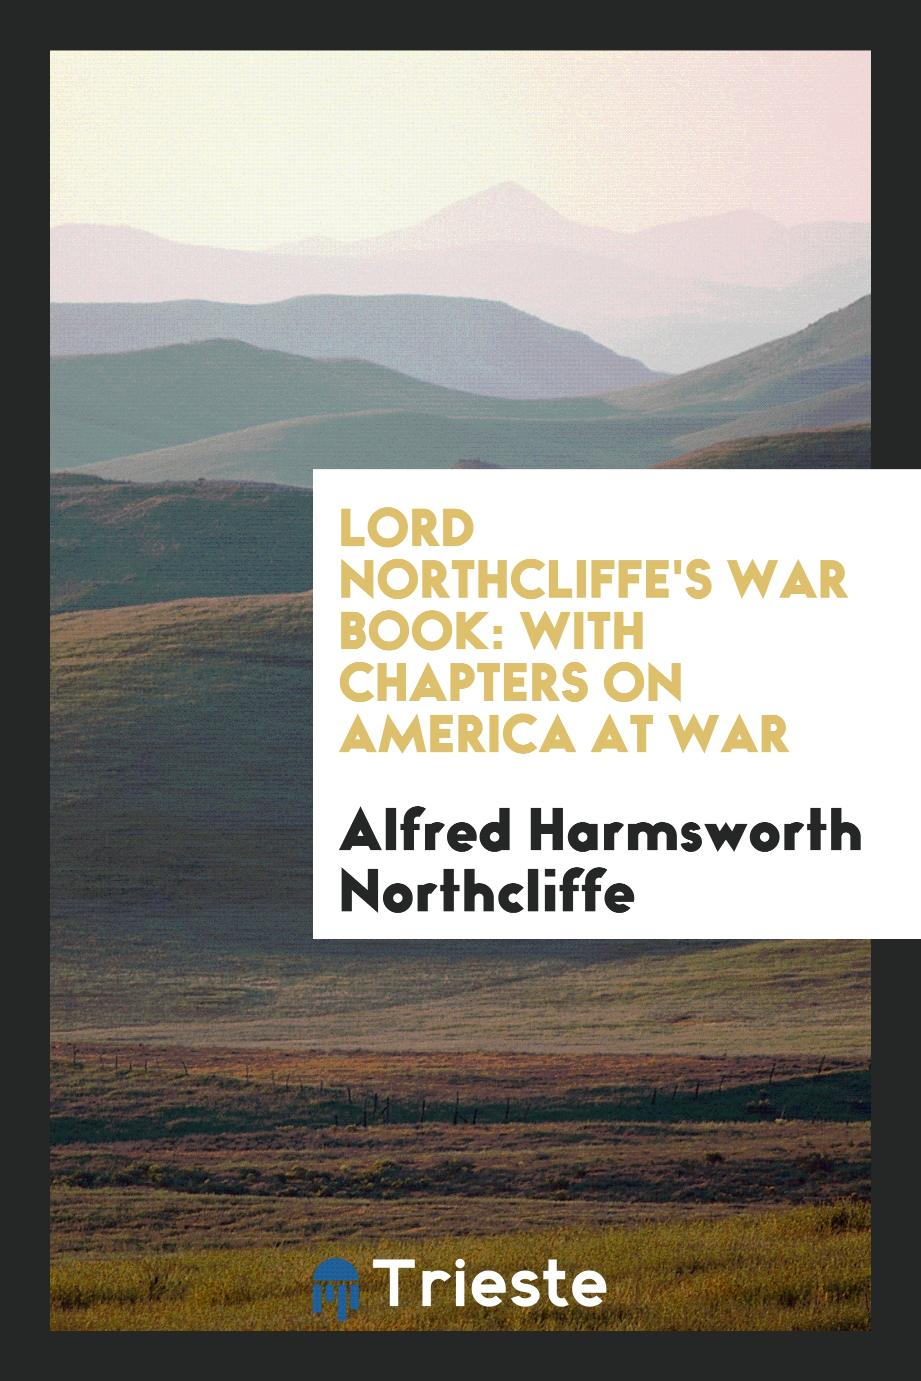 Lord Northcliffe's War Book: With Chapters on America at War